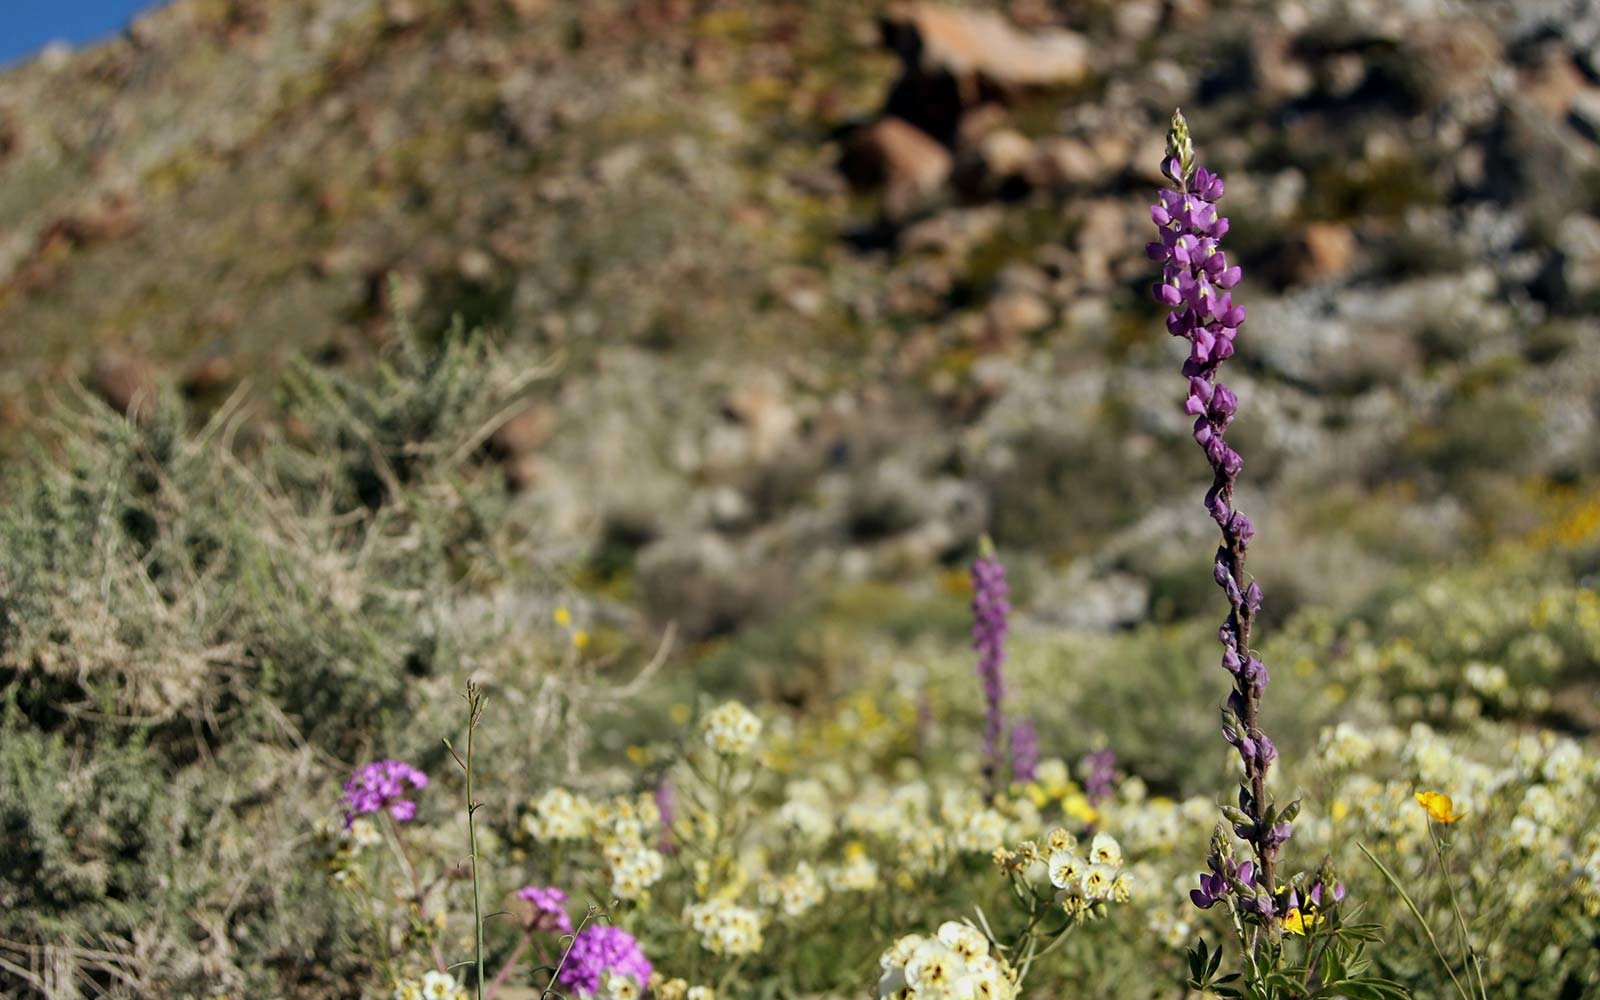 Super bloom in Southern California's Anza-Borrego Desert State Park